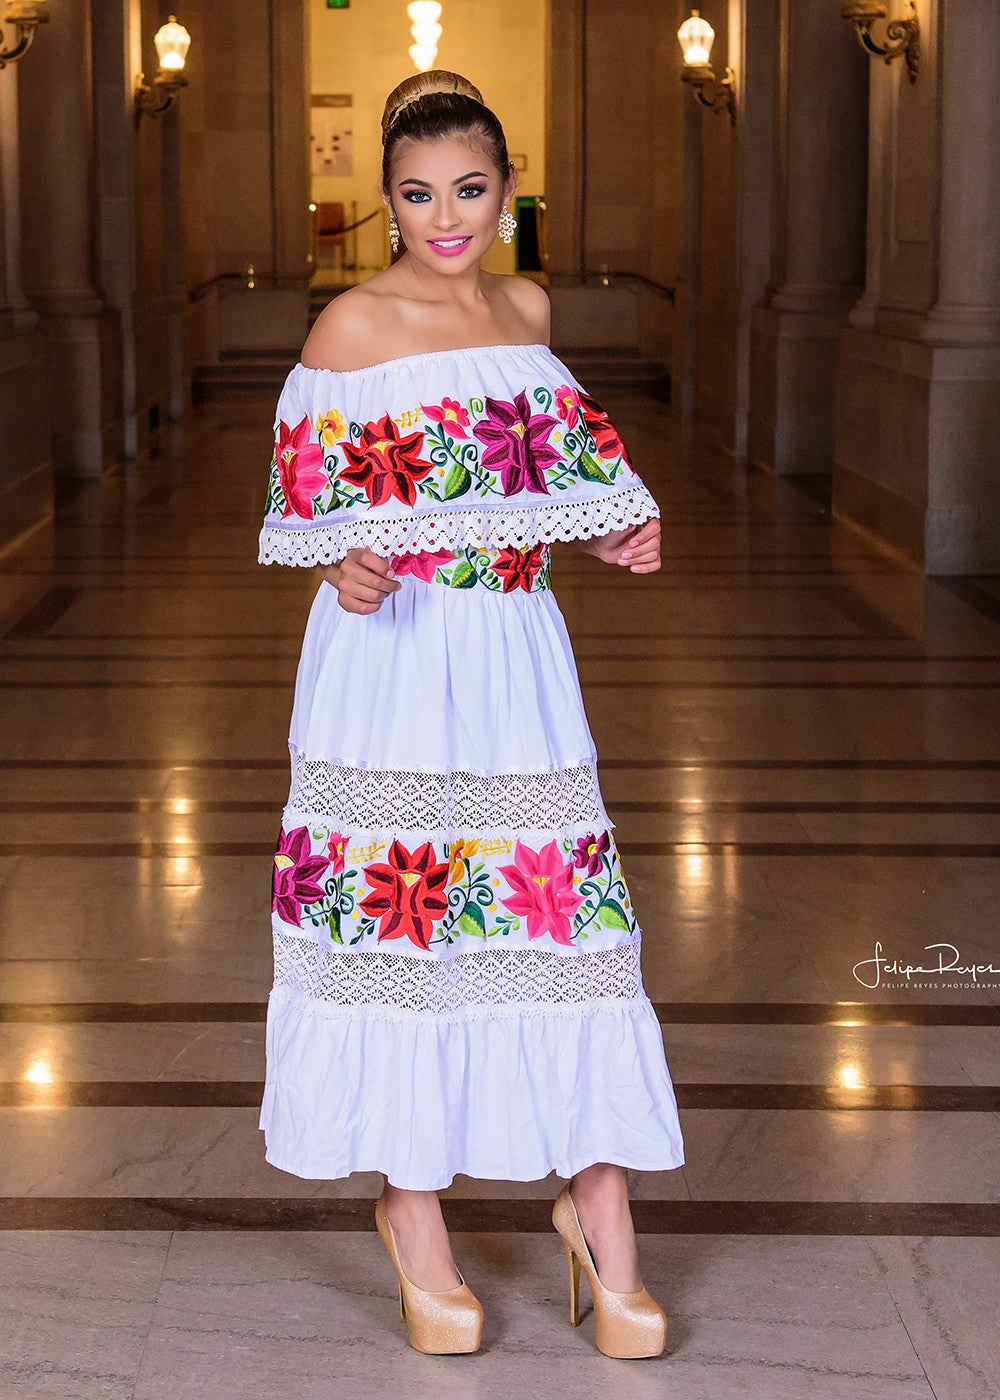 Gloria vidal authentic embroidery from mexico for Mexican wedding dresses for sale